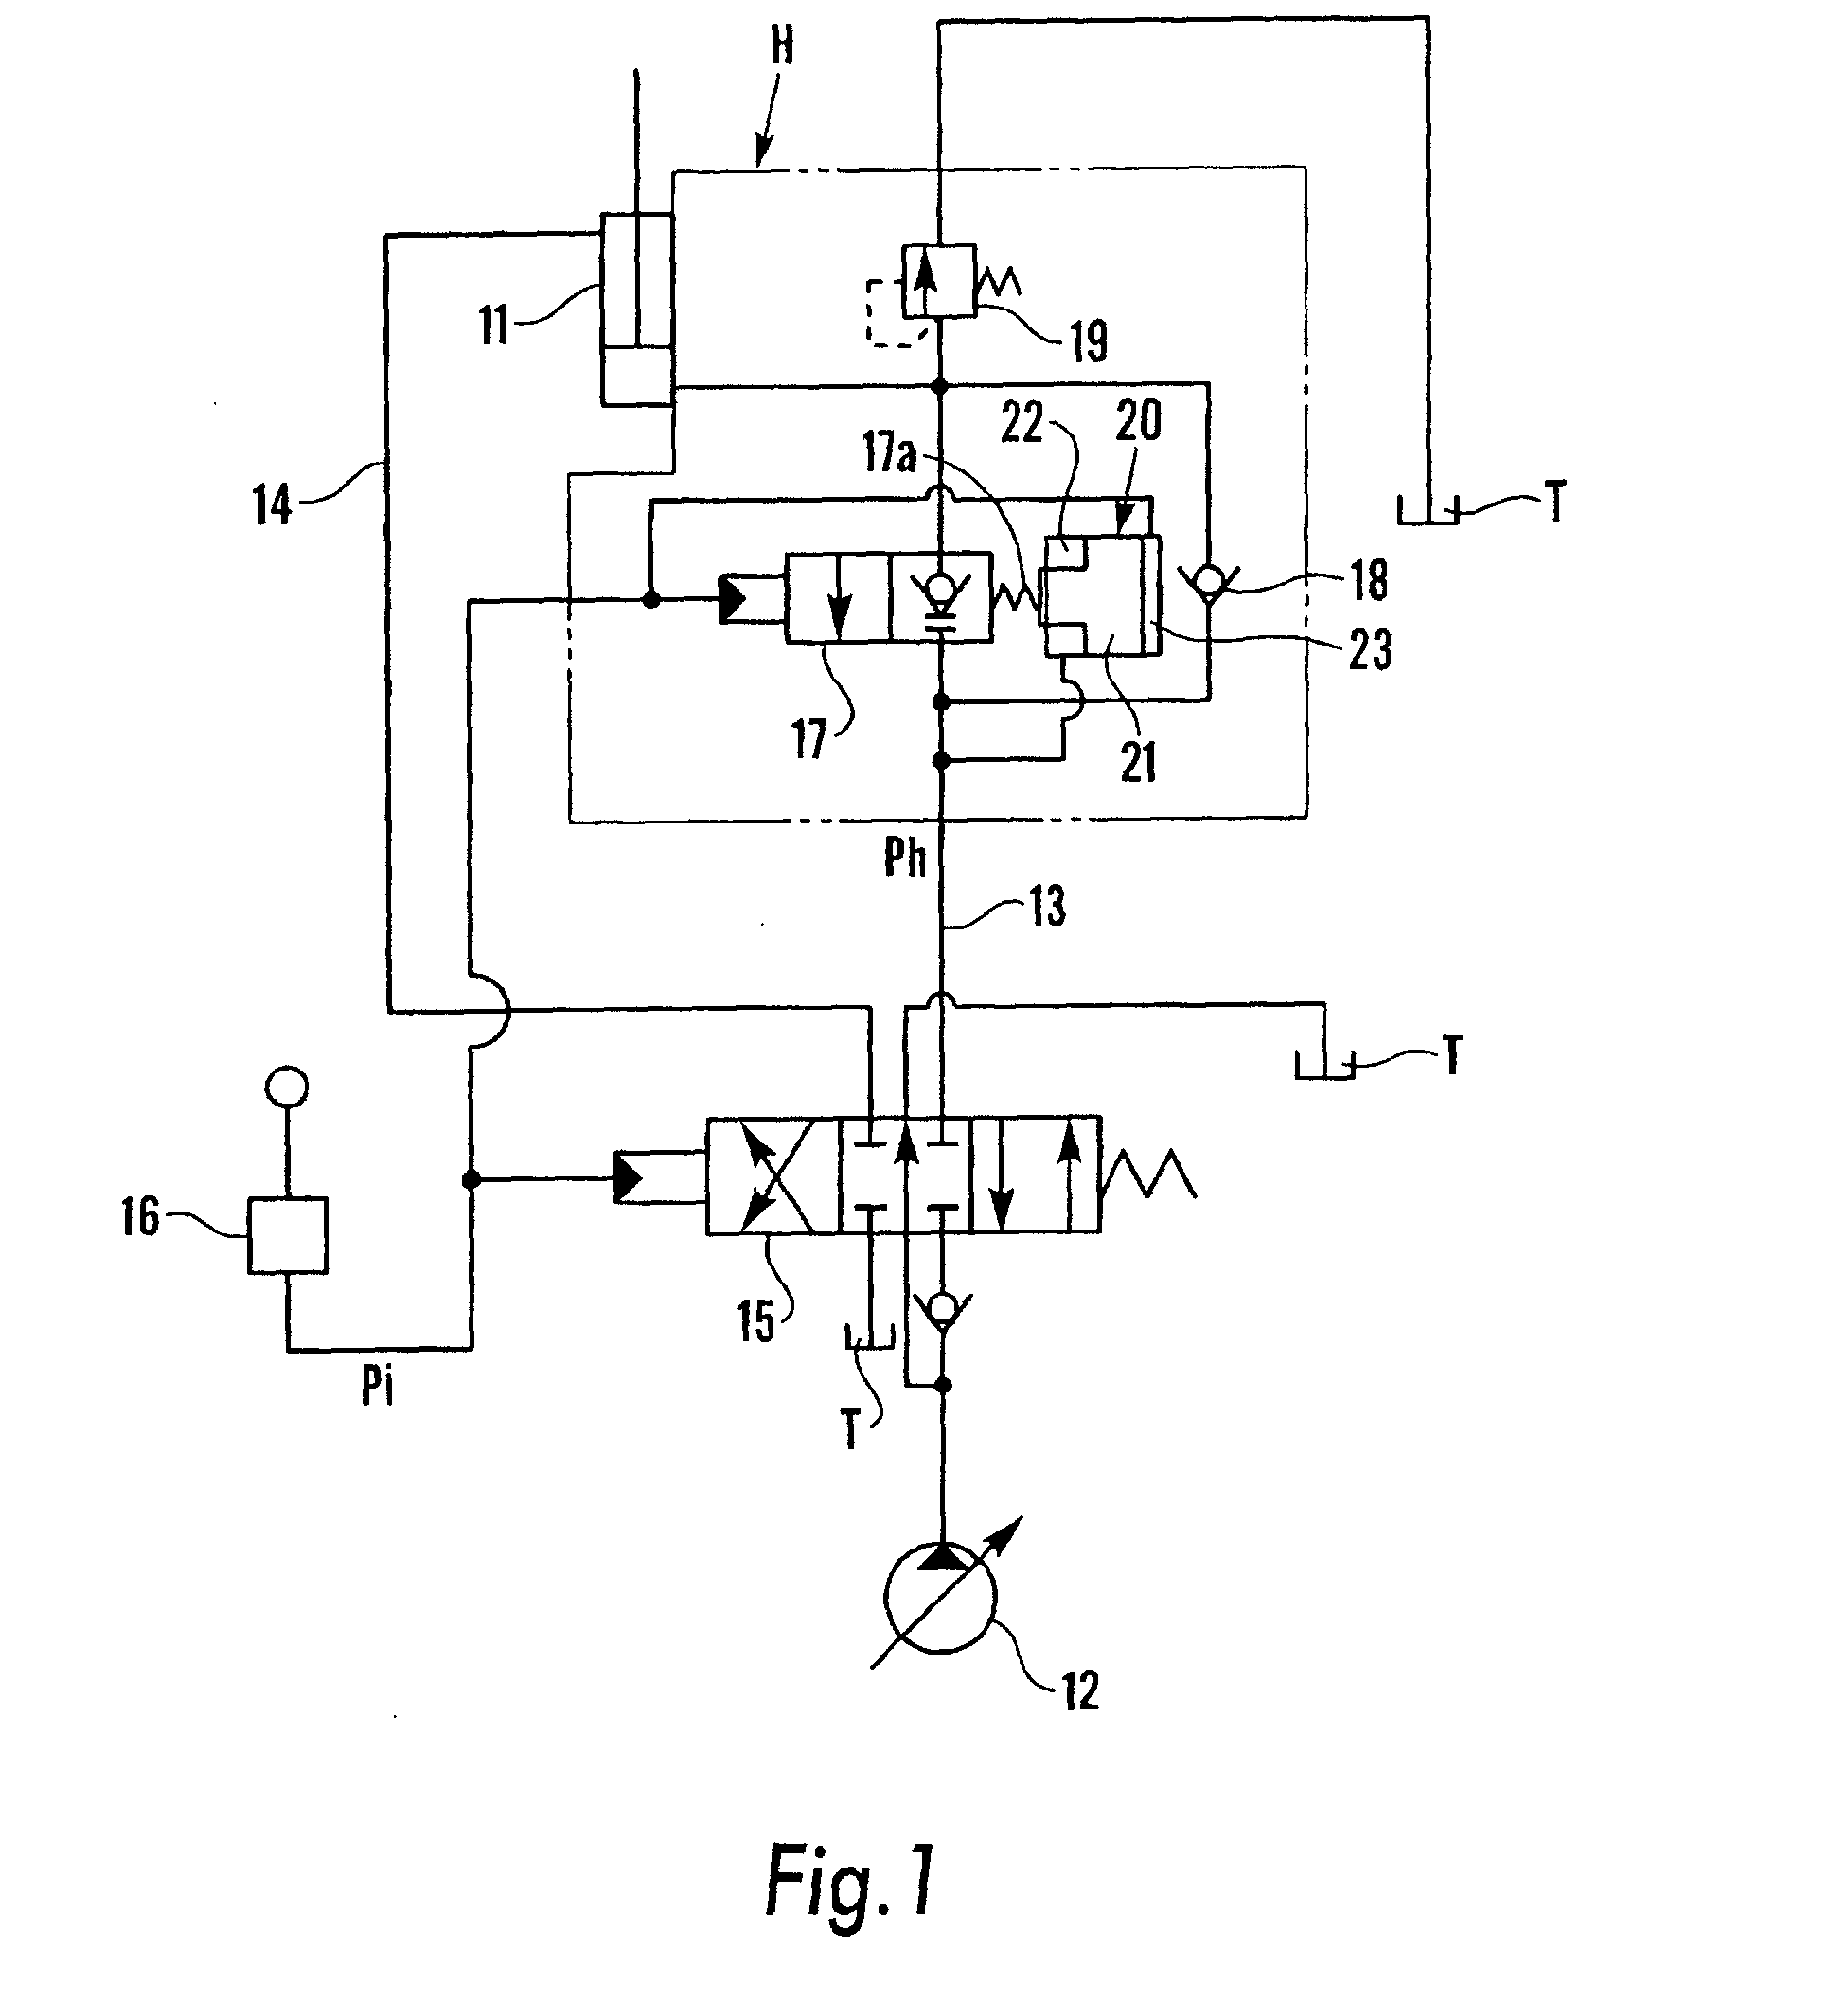 Patent ep1387089a2 hydraulic actuator circuit google patents patent drawing biocorpaavc Image collections